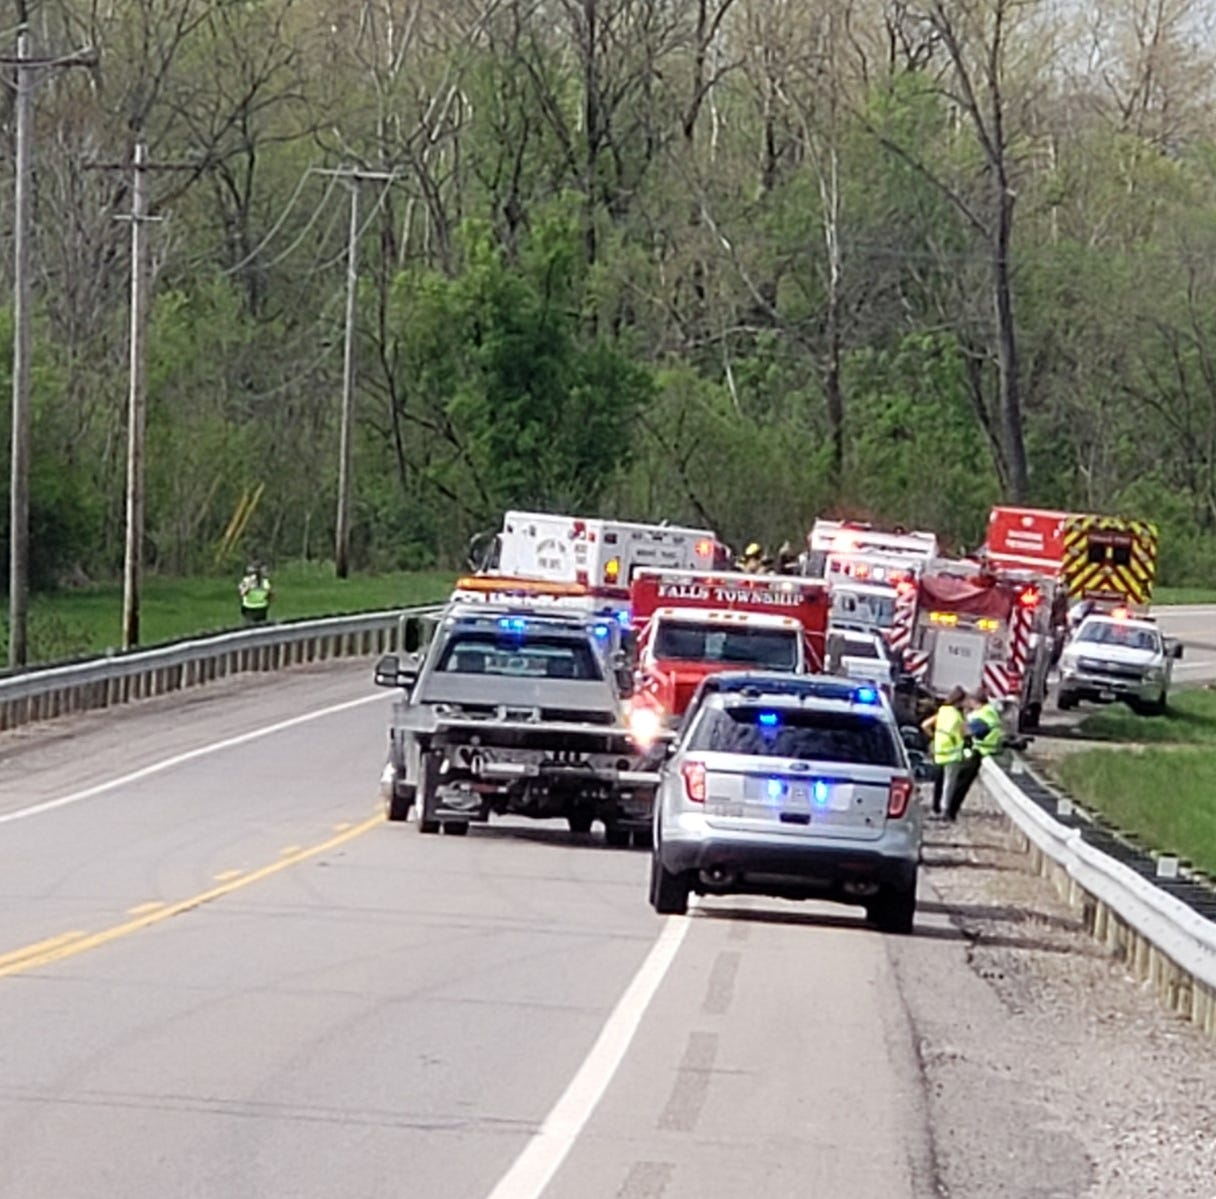 3 confirmed dead, 4 children transported to Columbus